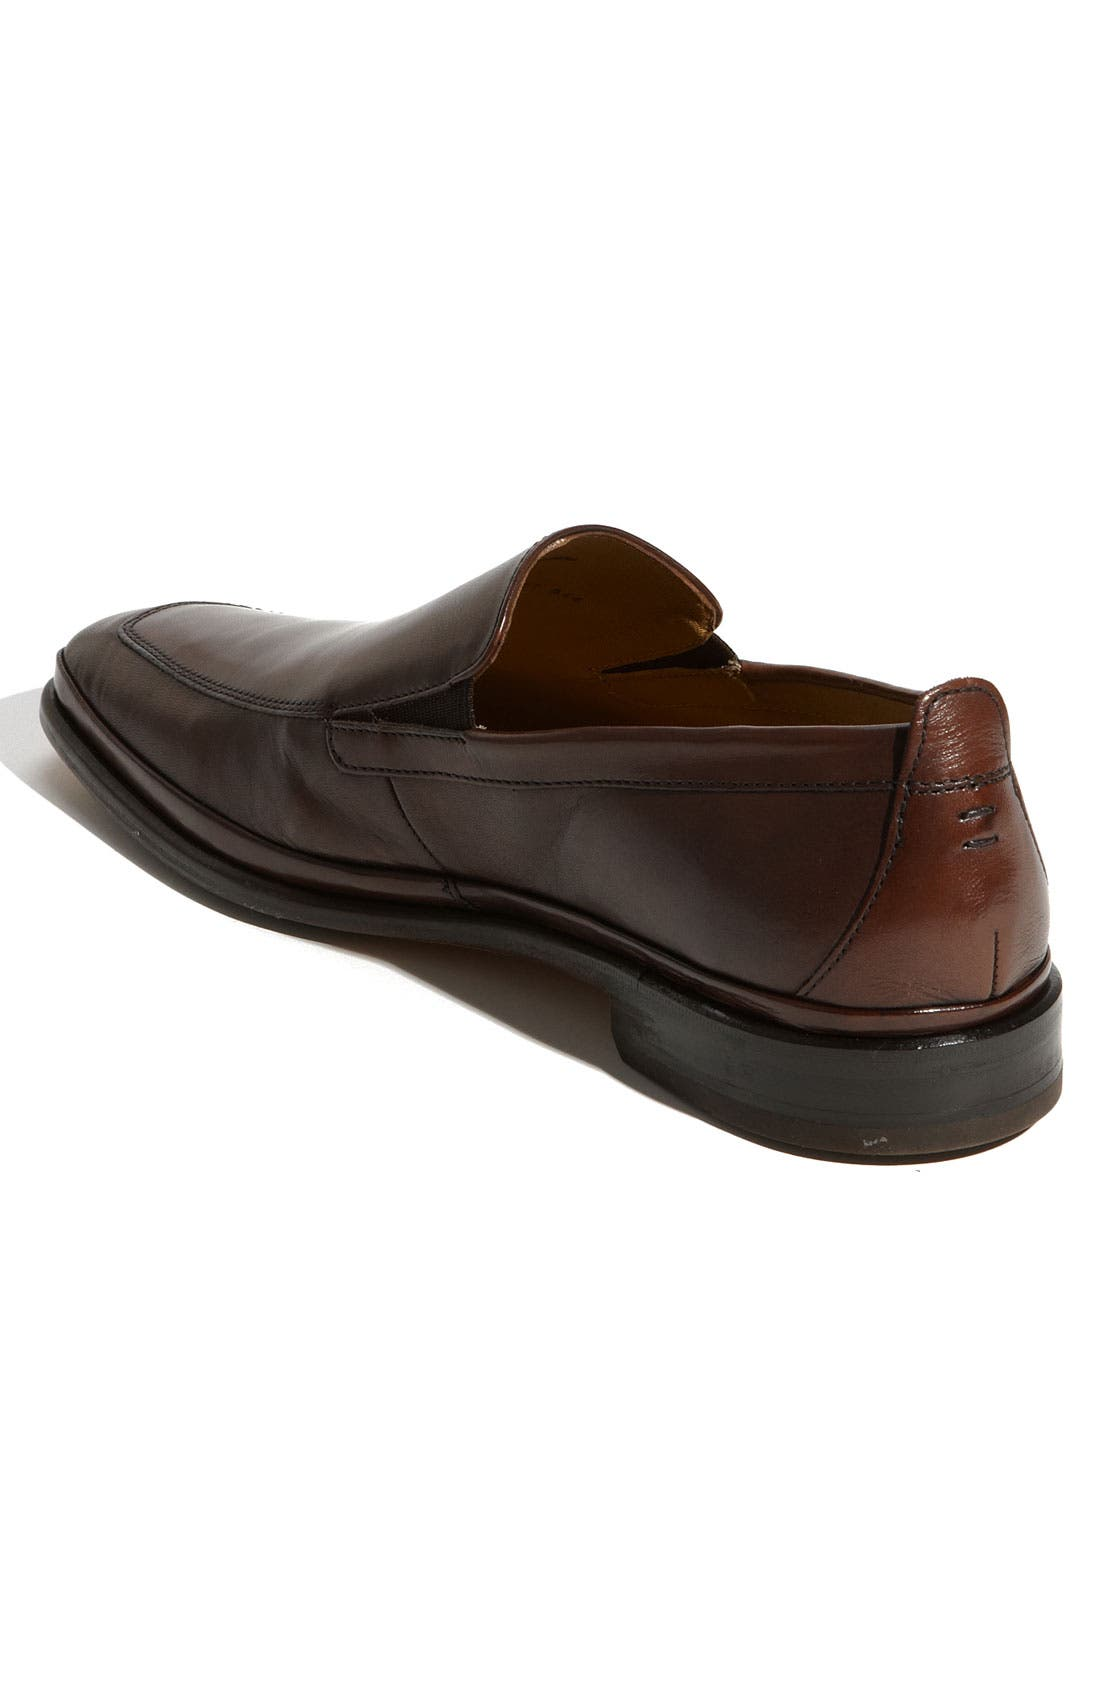 Alternate Image 2  - Cole Haan 'Bradenton' Venetian Slip-On